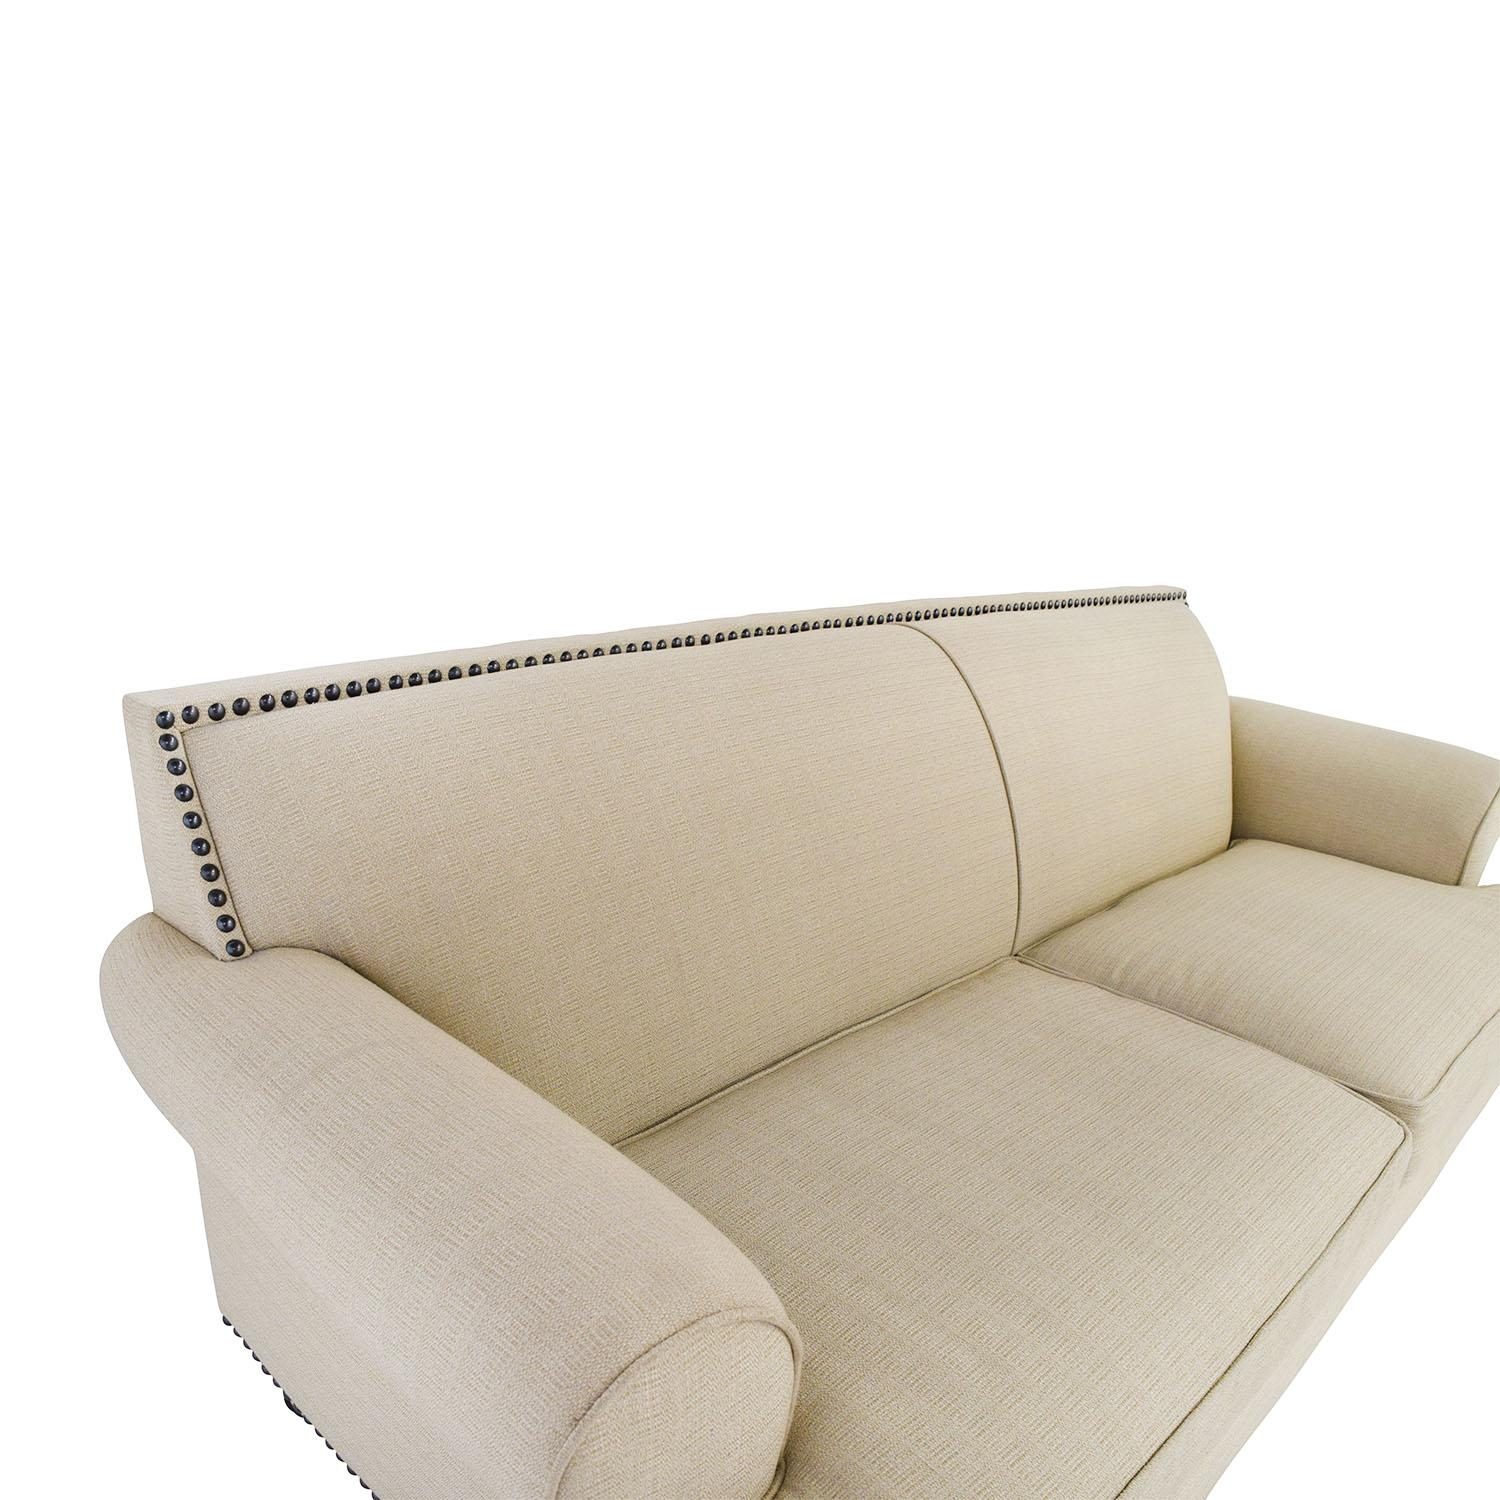 48% Off – Pier 1 Pier 1 Carmen Tan Couch With Studs / Sofas For Pier 1 Carmen Sofas (View 19 of 20)